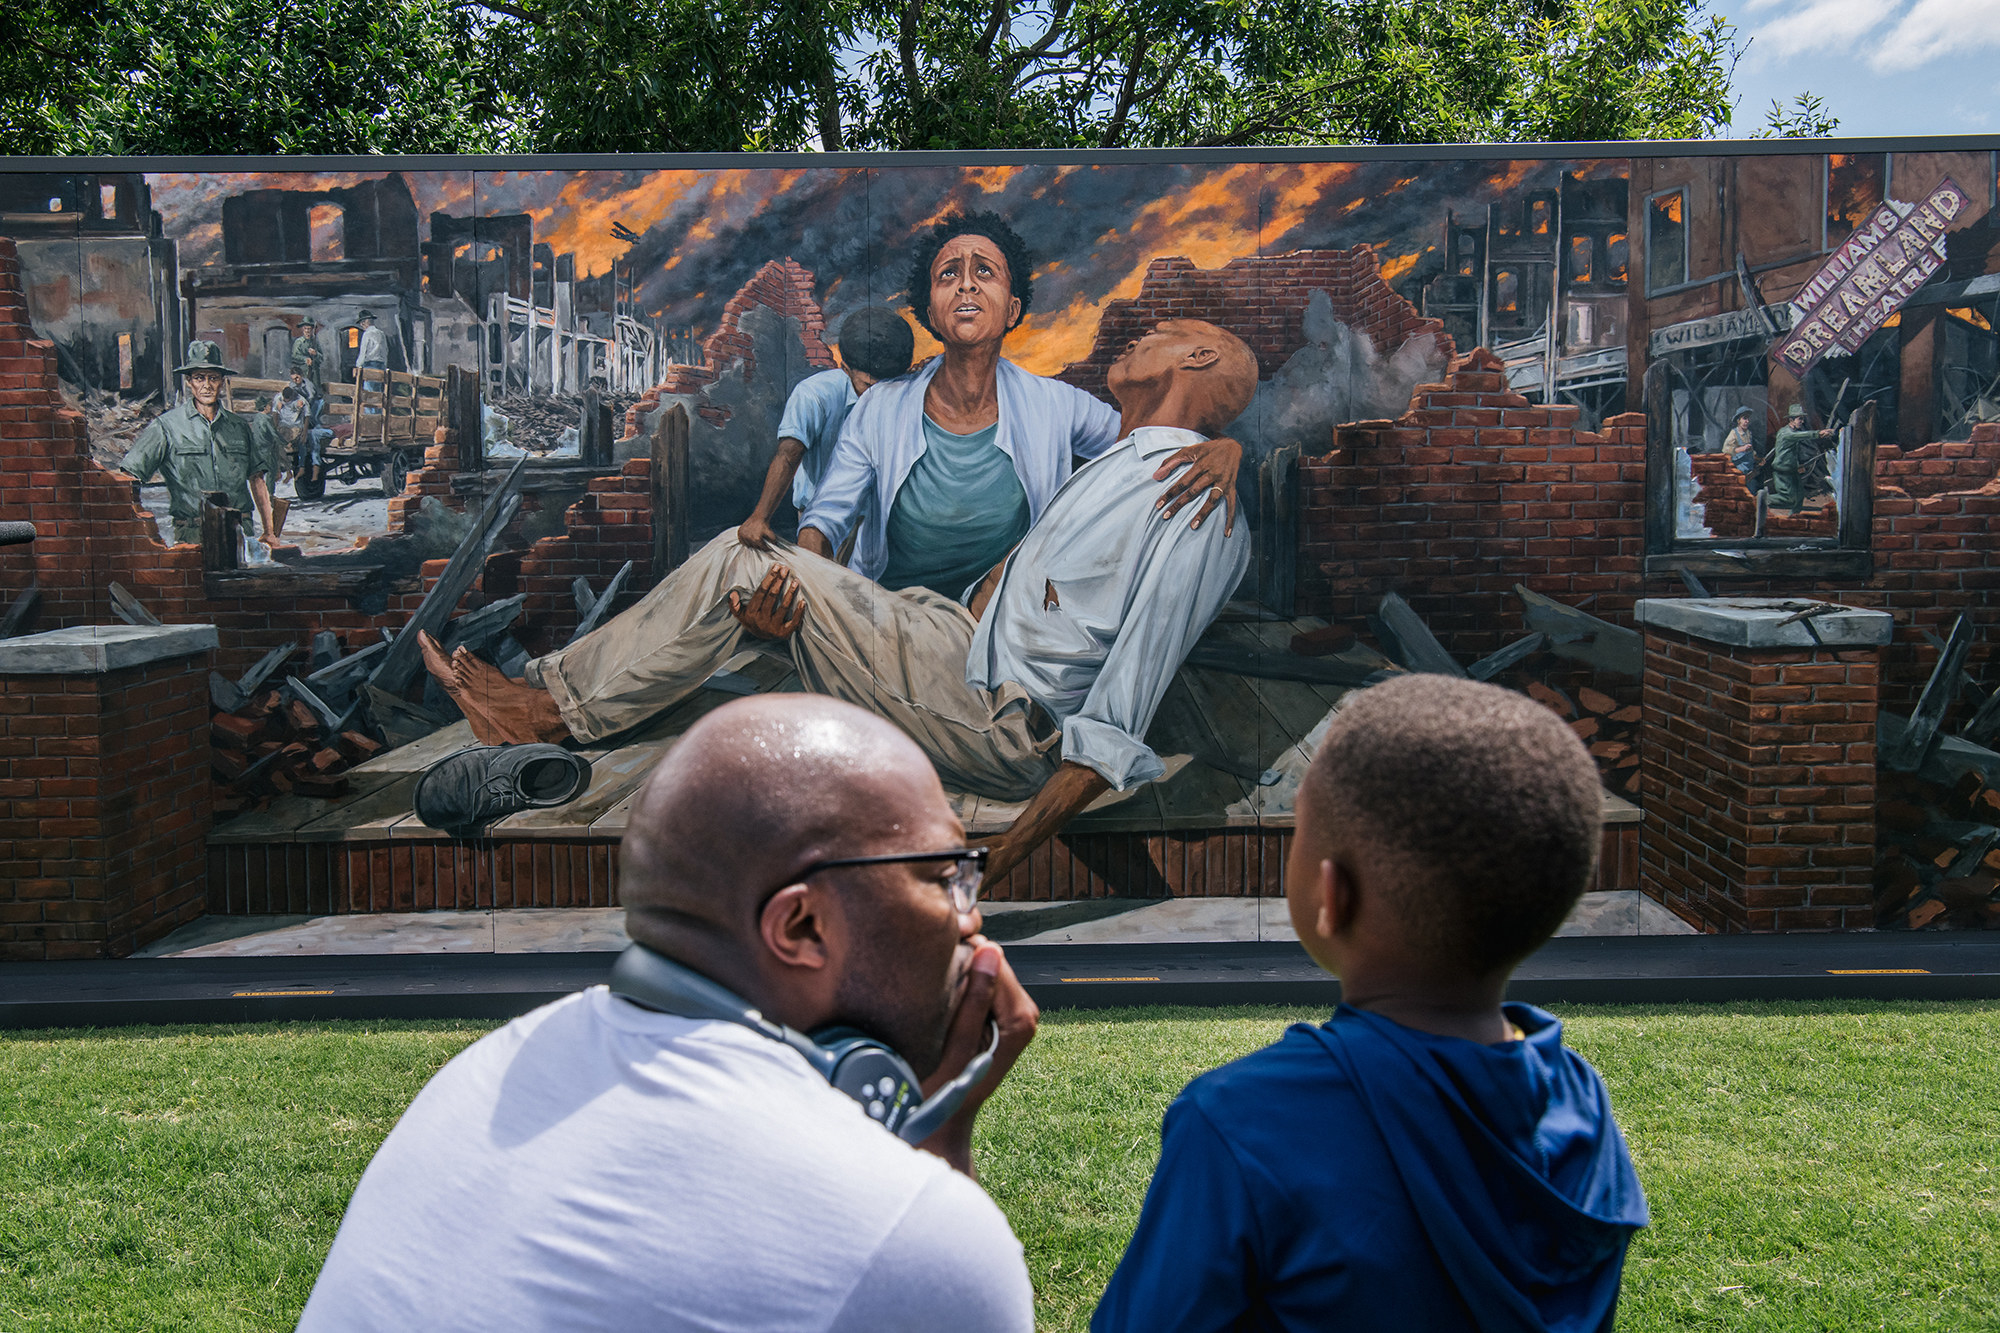 A man and young boy look at a mural showing a Black woman carrying a Black man amid flaming ruins